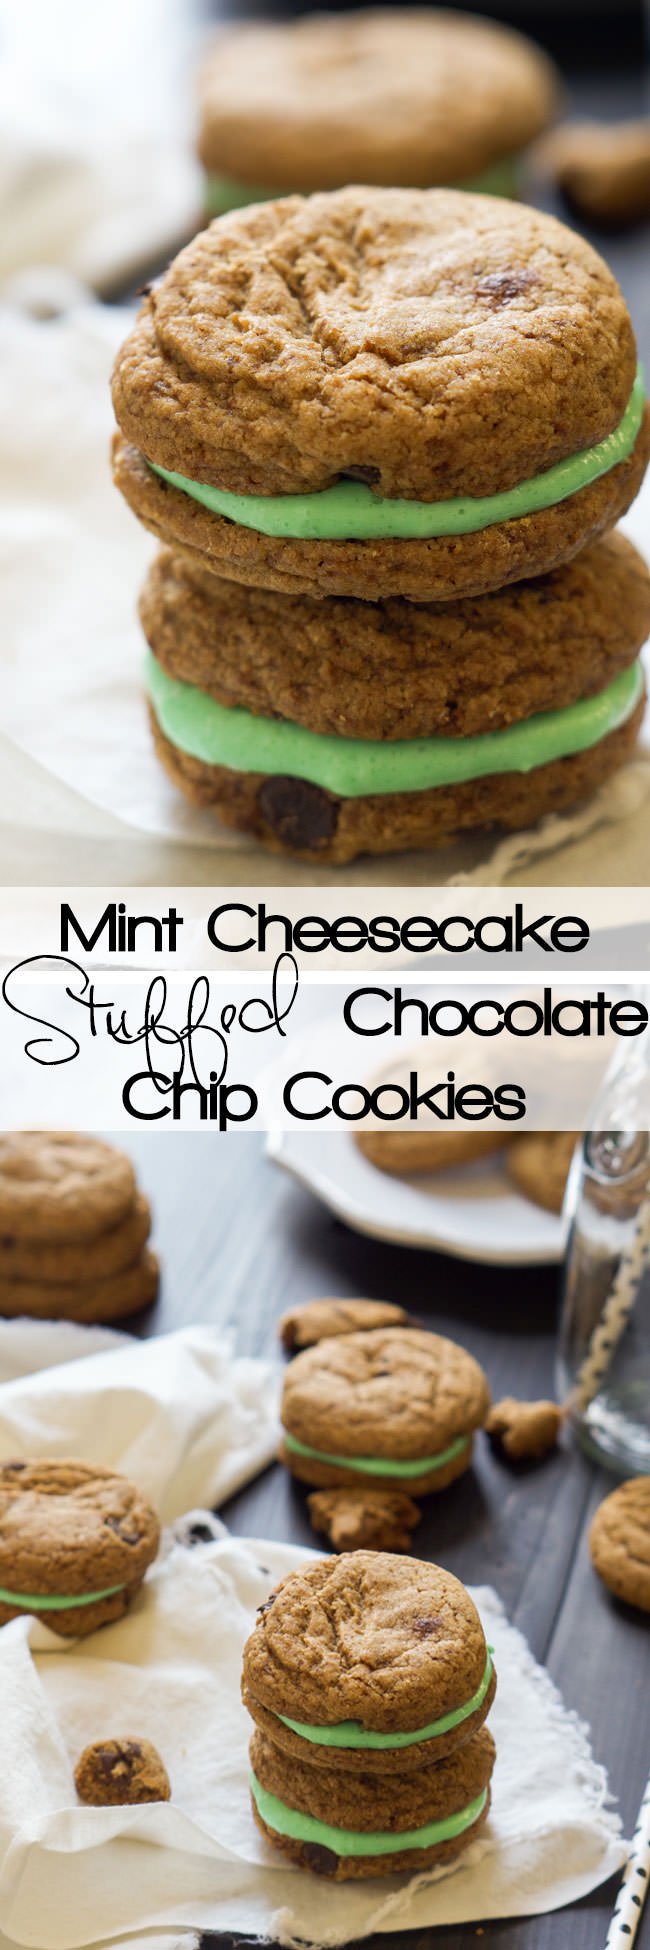 Mint Cheesecake Stuffed Chocolate Chip Cookies are filled with a creamy, mint cheesecake mixture that is perfect for your sweet tooth or any party!